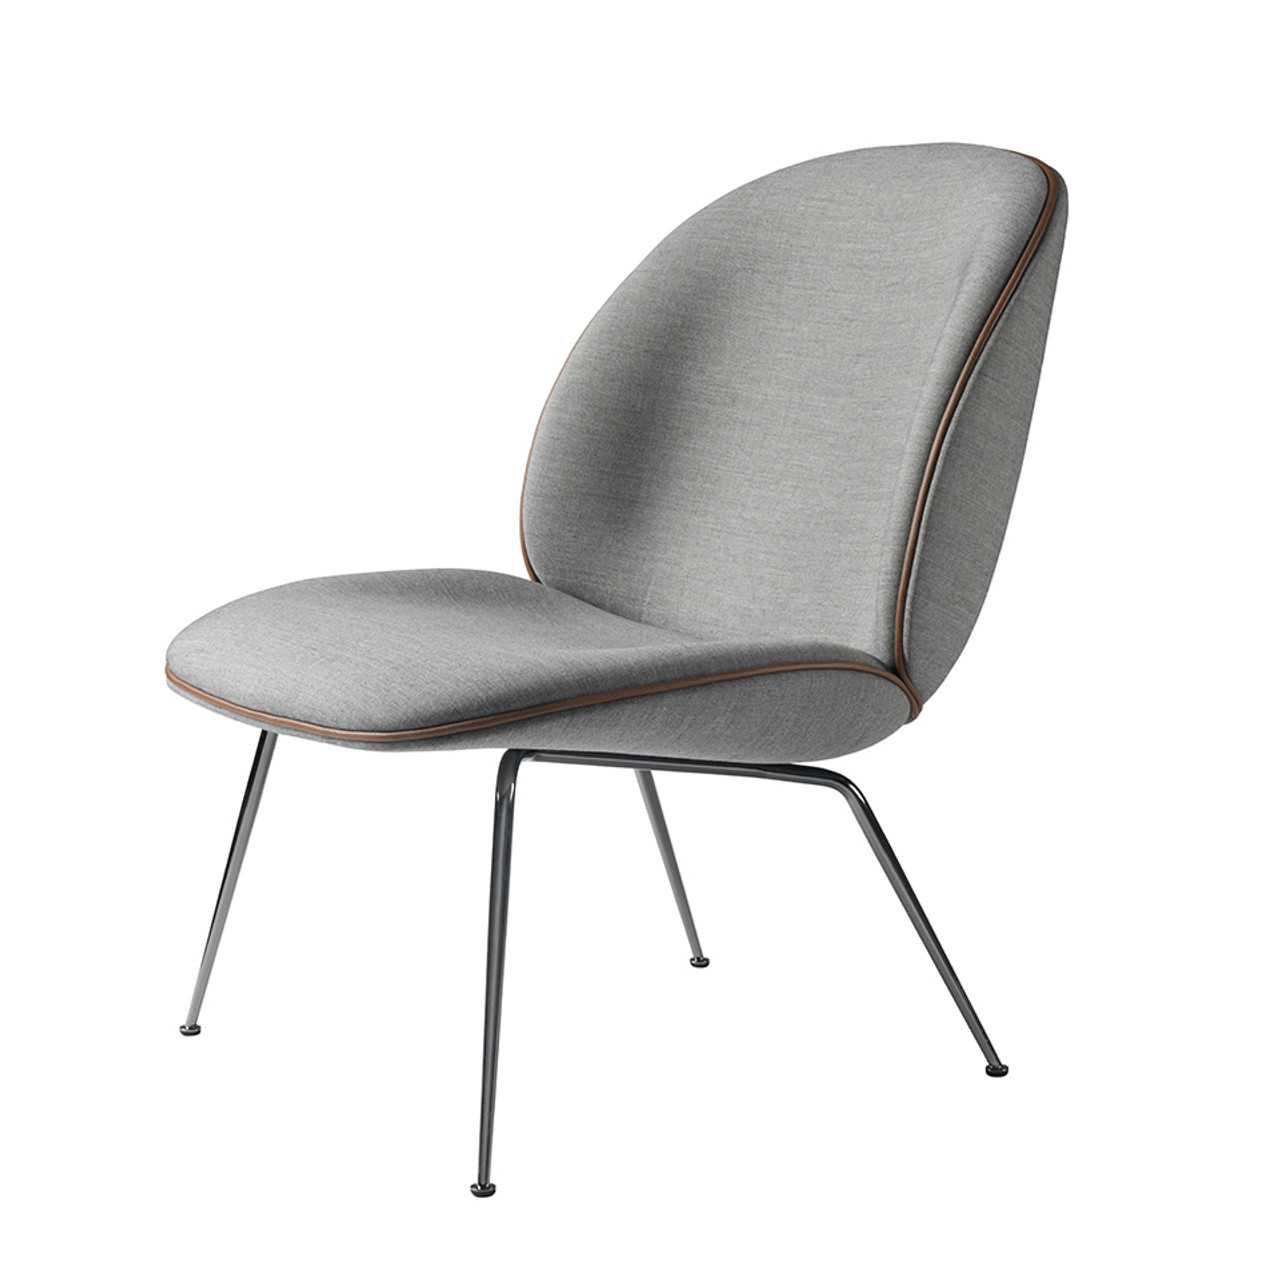 Pleasing Gubi Beetle Lounge Chair Upholstered Iconic Base Spiritservingveterans Wood Chair Design Ideas Spiritservingveteransorg